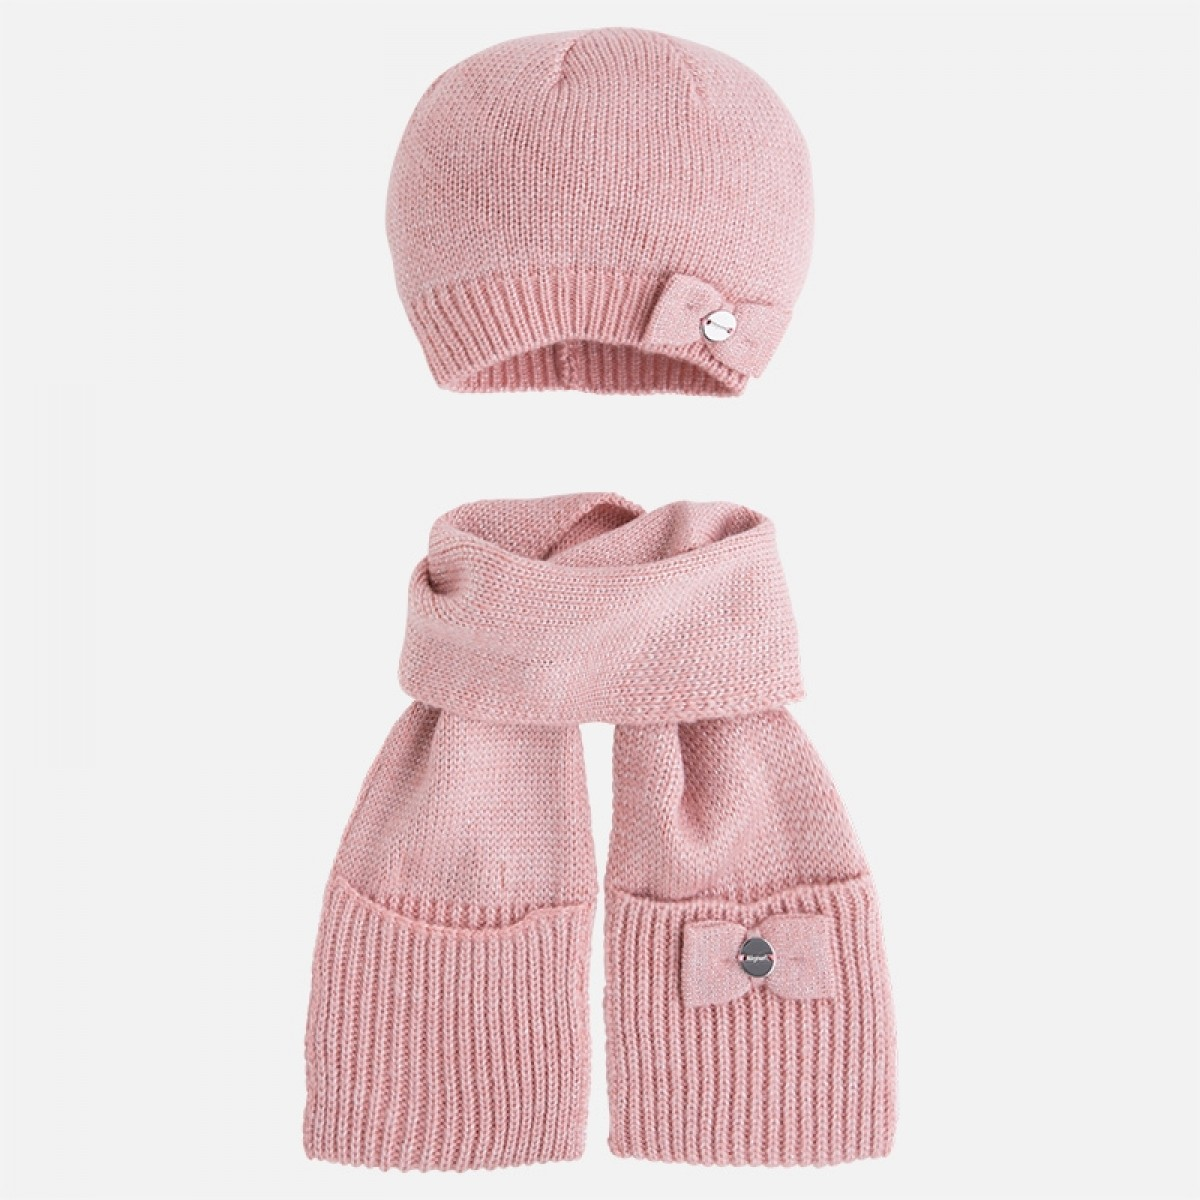 6eacb590f1a Girls Sparkly Hat and Scarf Set - Pink (10294)